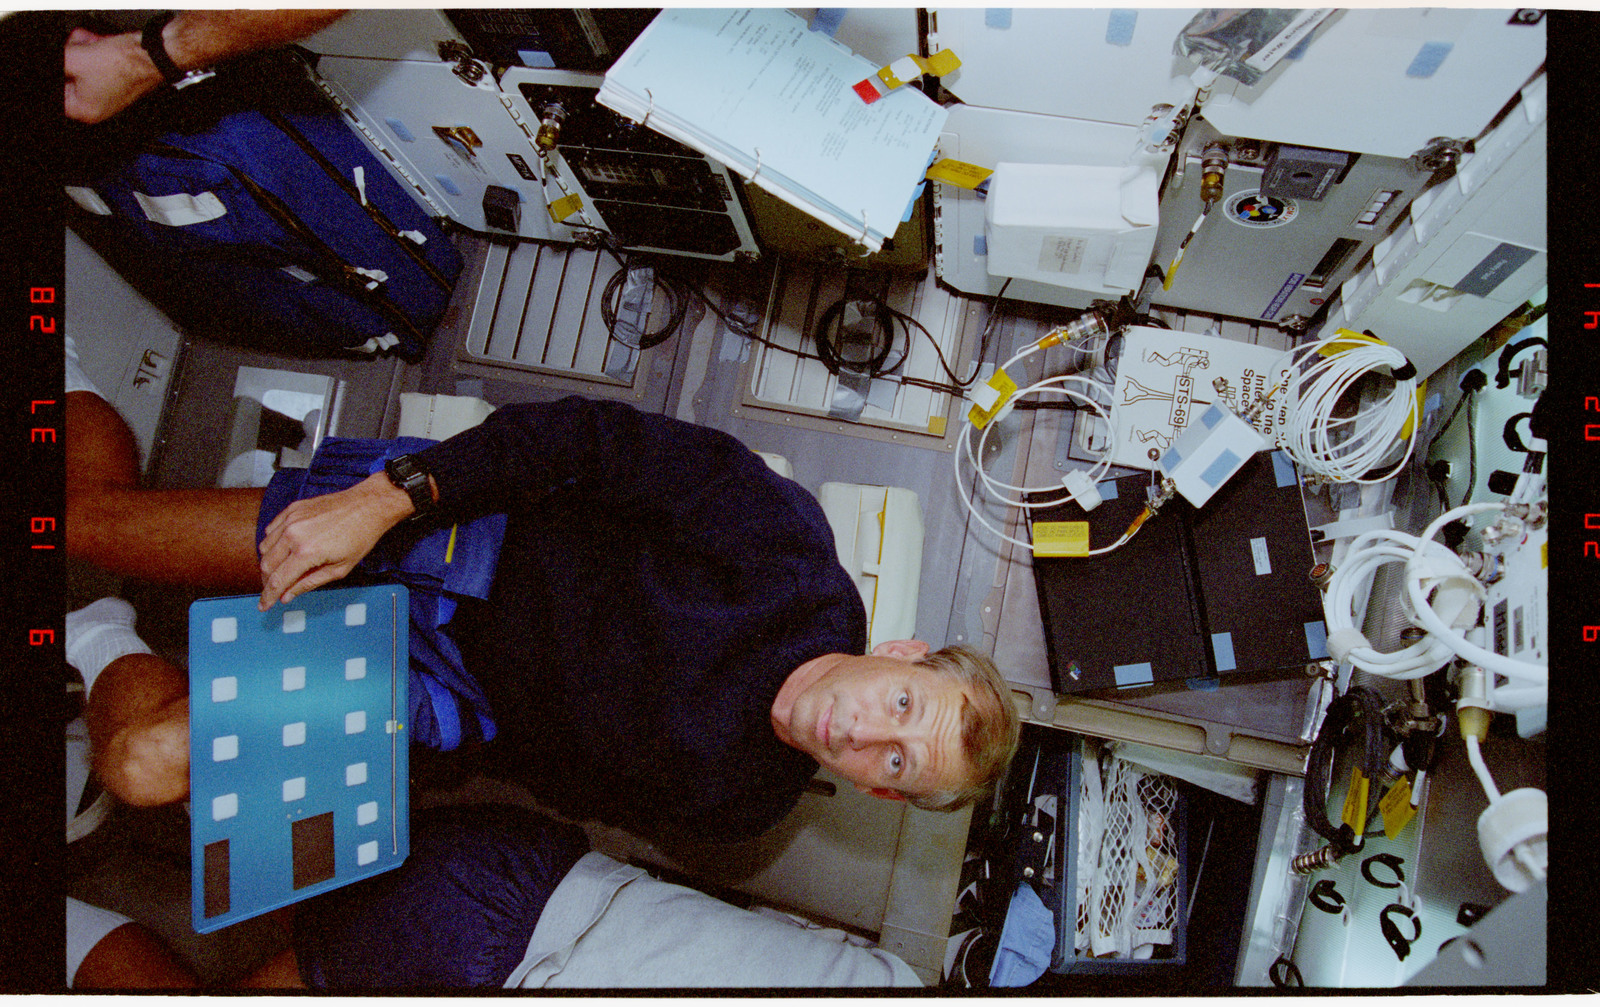 STS069-362-019 - STS-069 - STS-69 crew on middeck during meal time